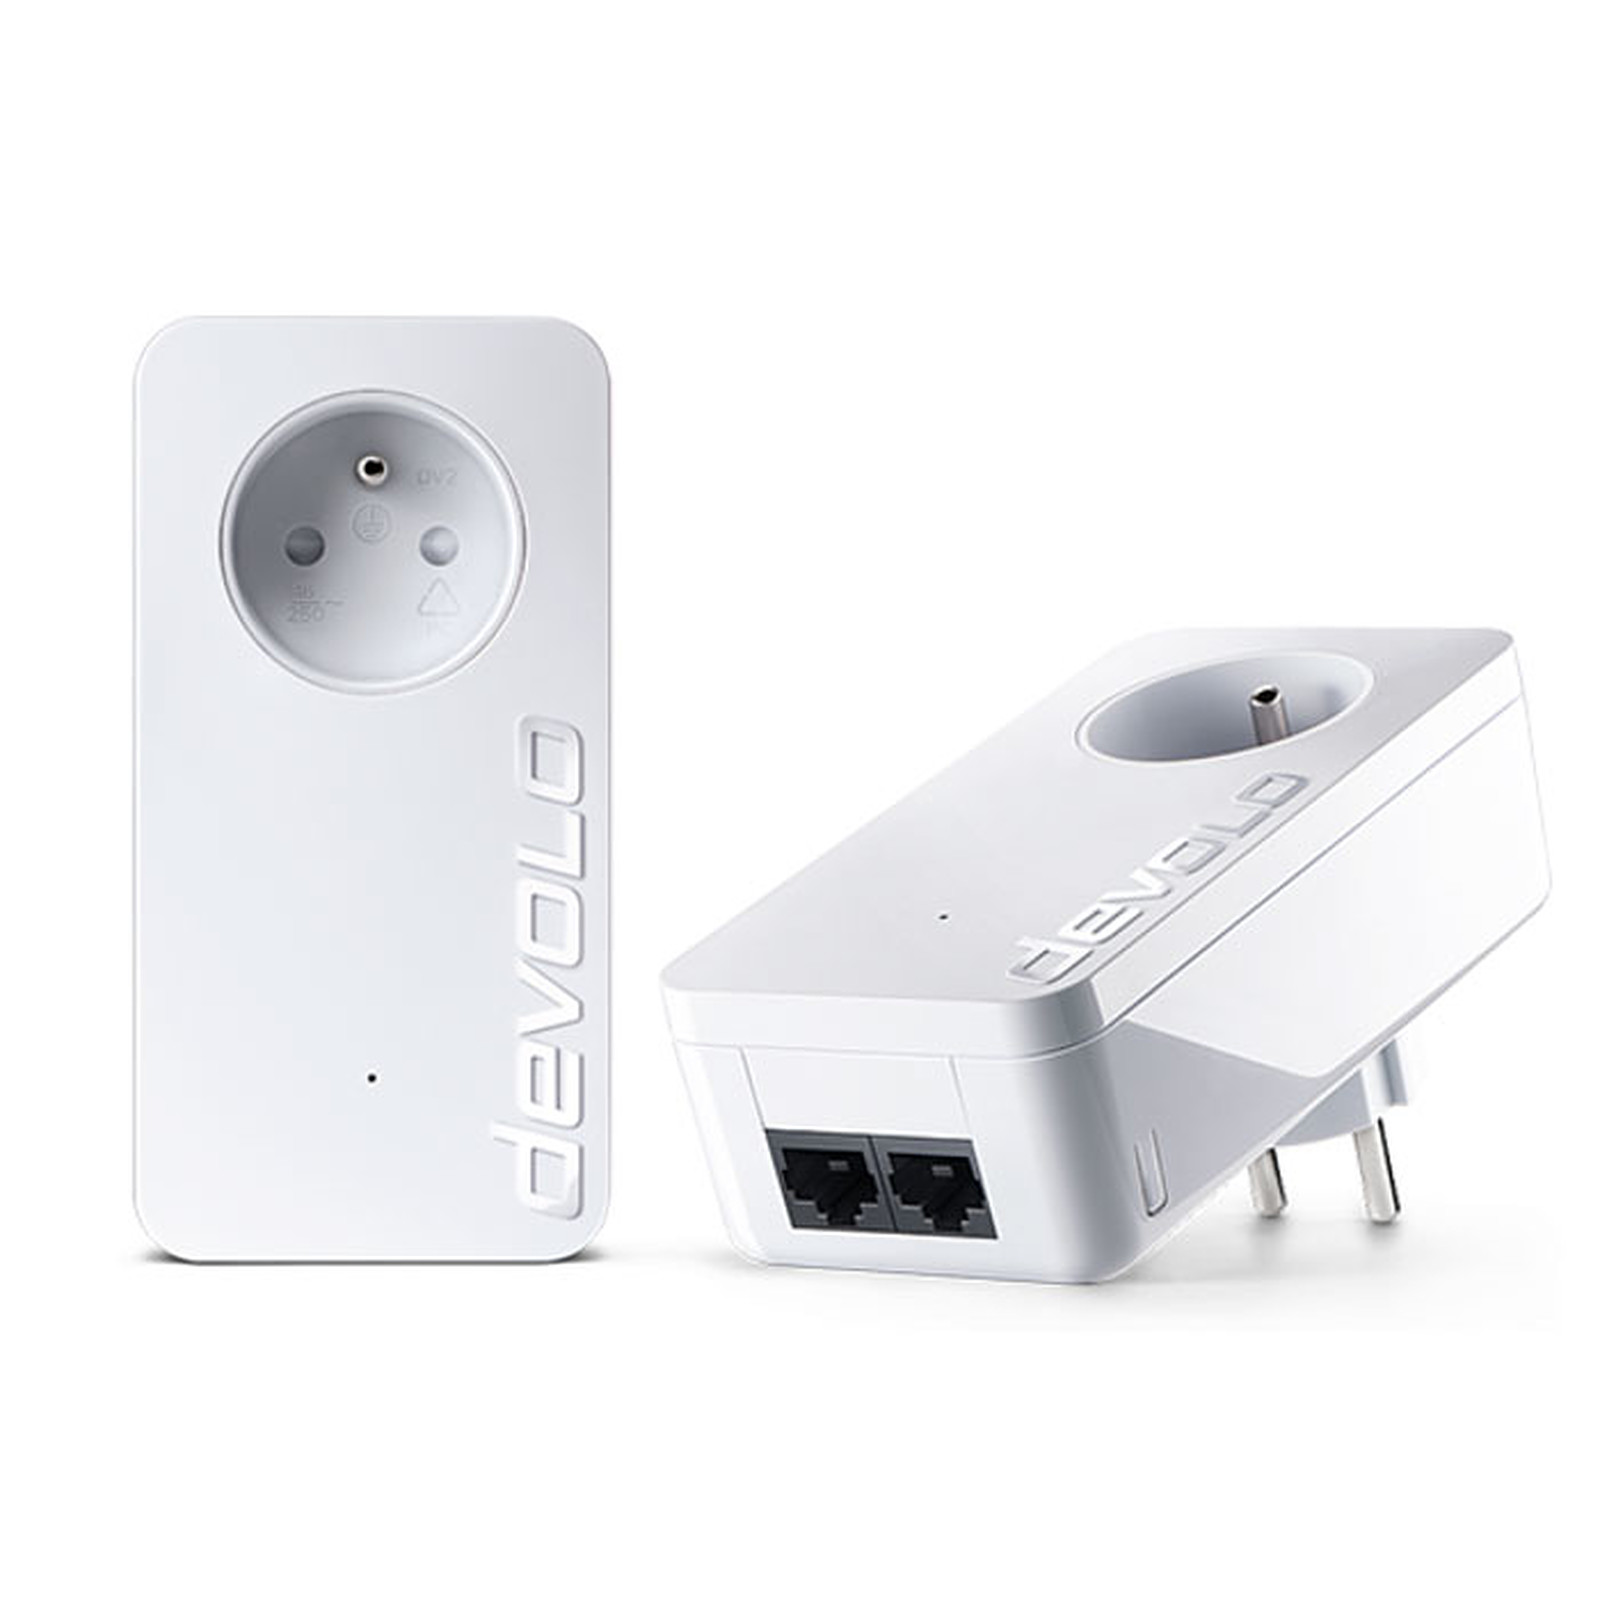 Devolo dLAN 1000 duo+  Starter Kit CPL